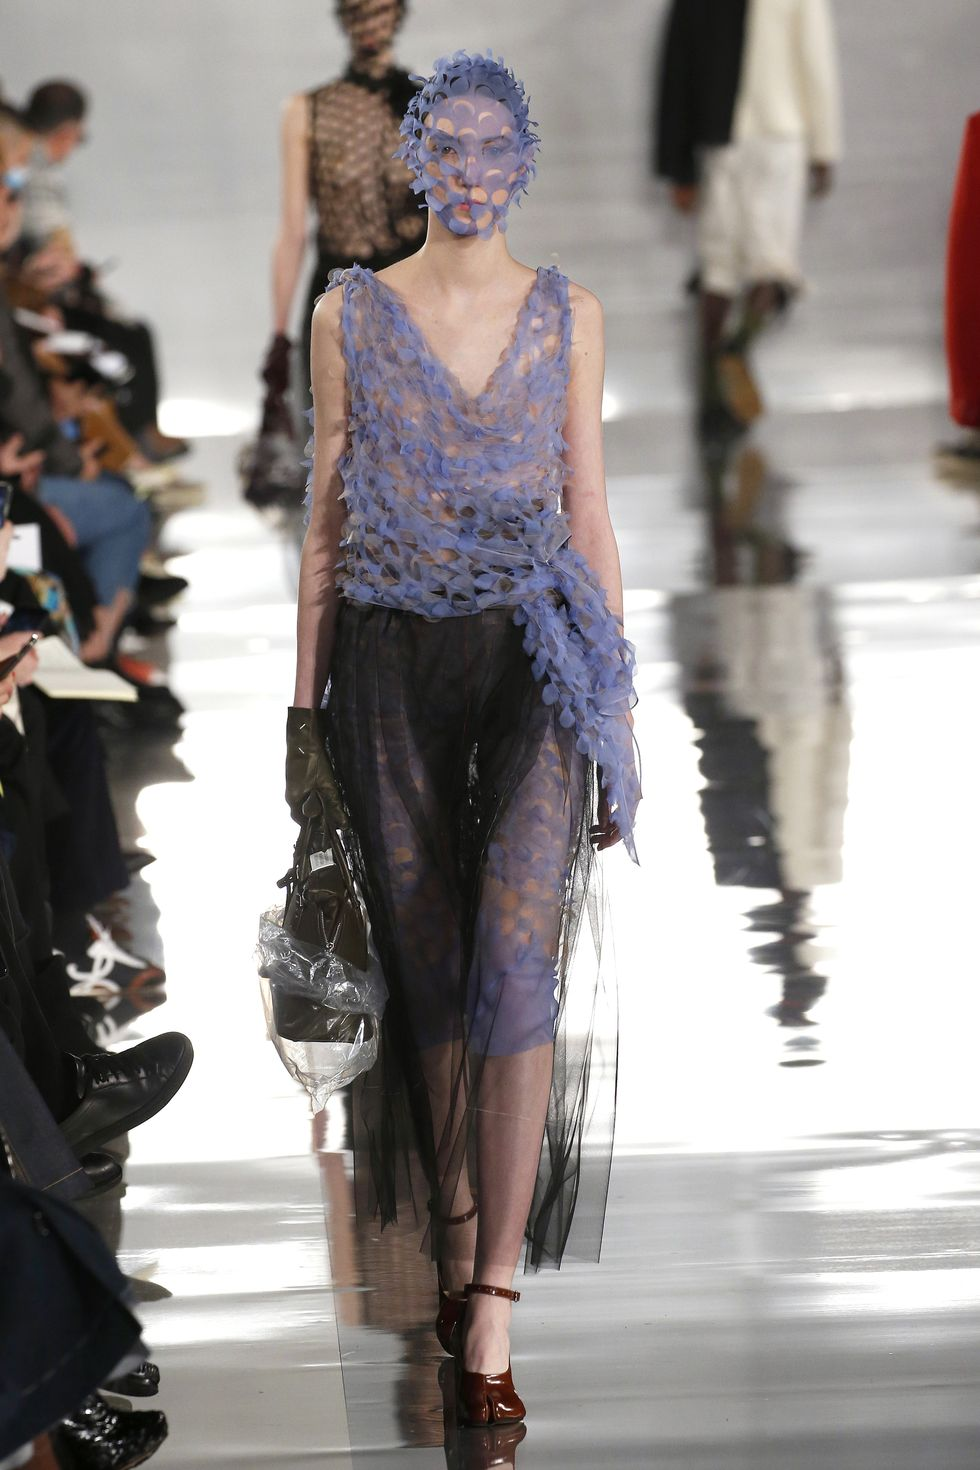 paris fashion week 2020 Be Amazed By Paris Fashion Week 2020's Runway Looks gettyimages 1208803375